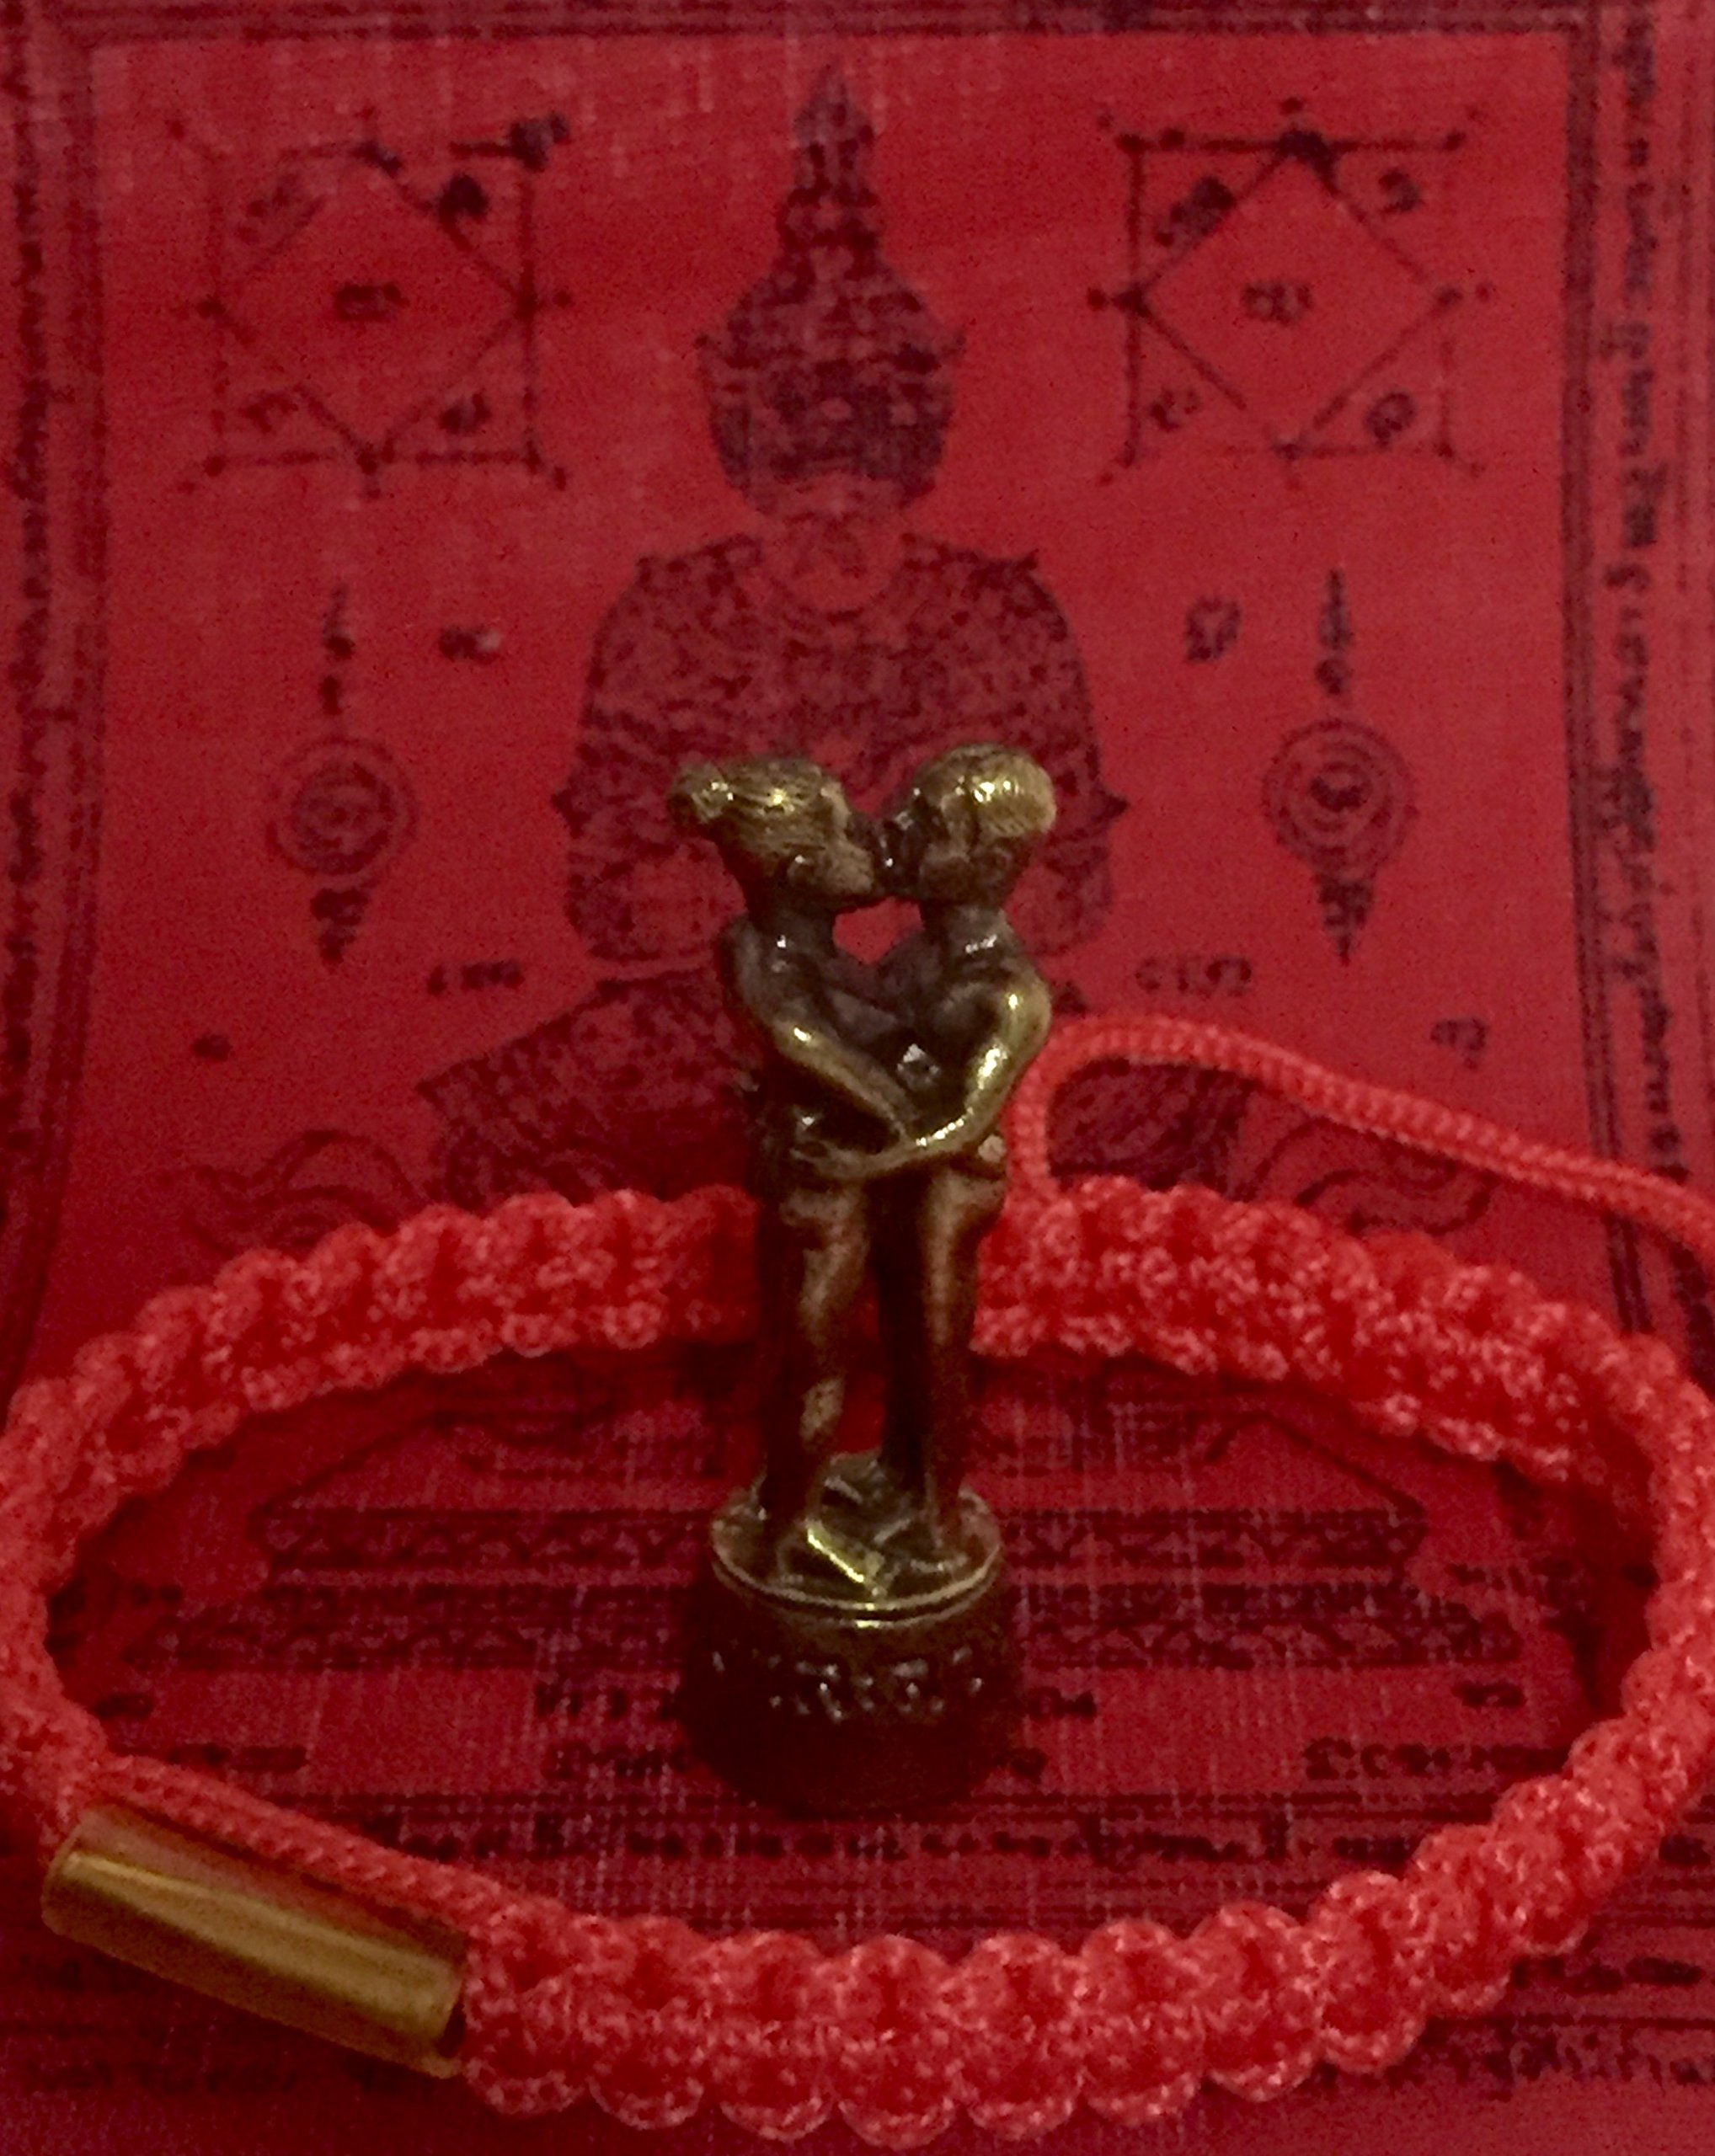 San jewelry Thai Amulets Powerful Lucky in Lovers Forever Magic INN Koo Mahasanaeh Powerful Love Attraction Thai Amulet 1 set contains. Holy talisman, wrist strap Montra, genuine by Mr.San Power only.